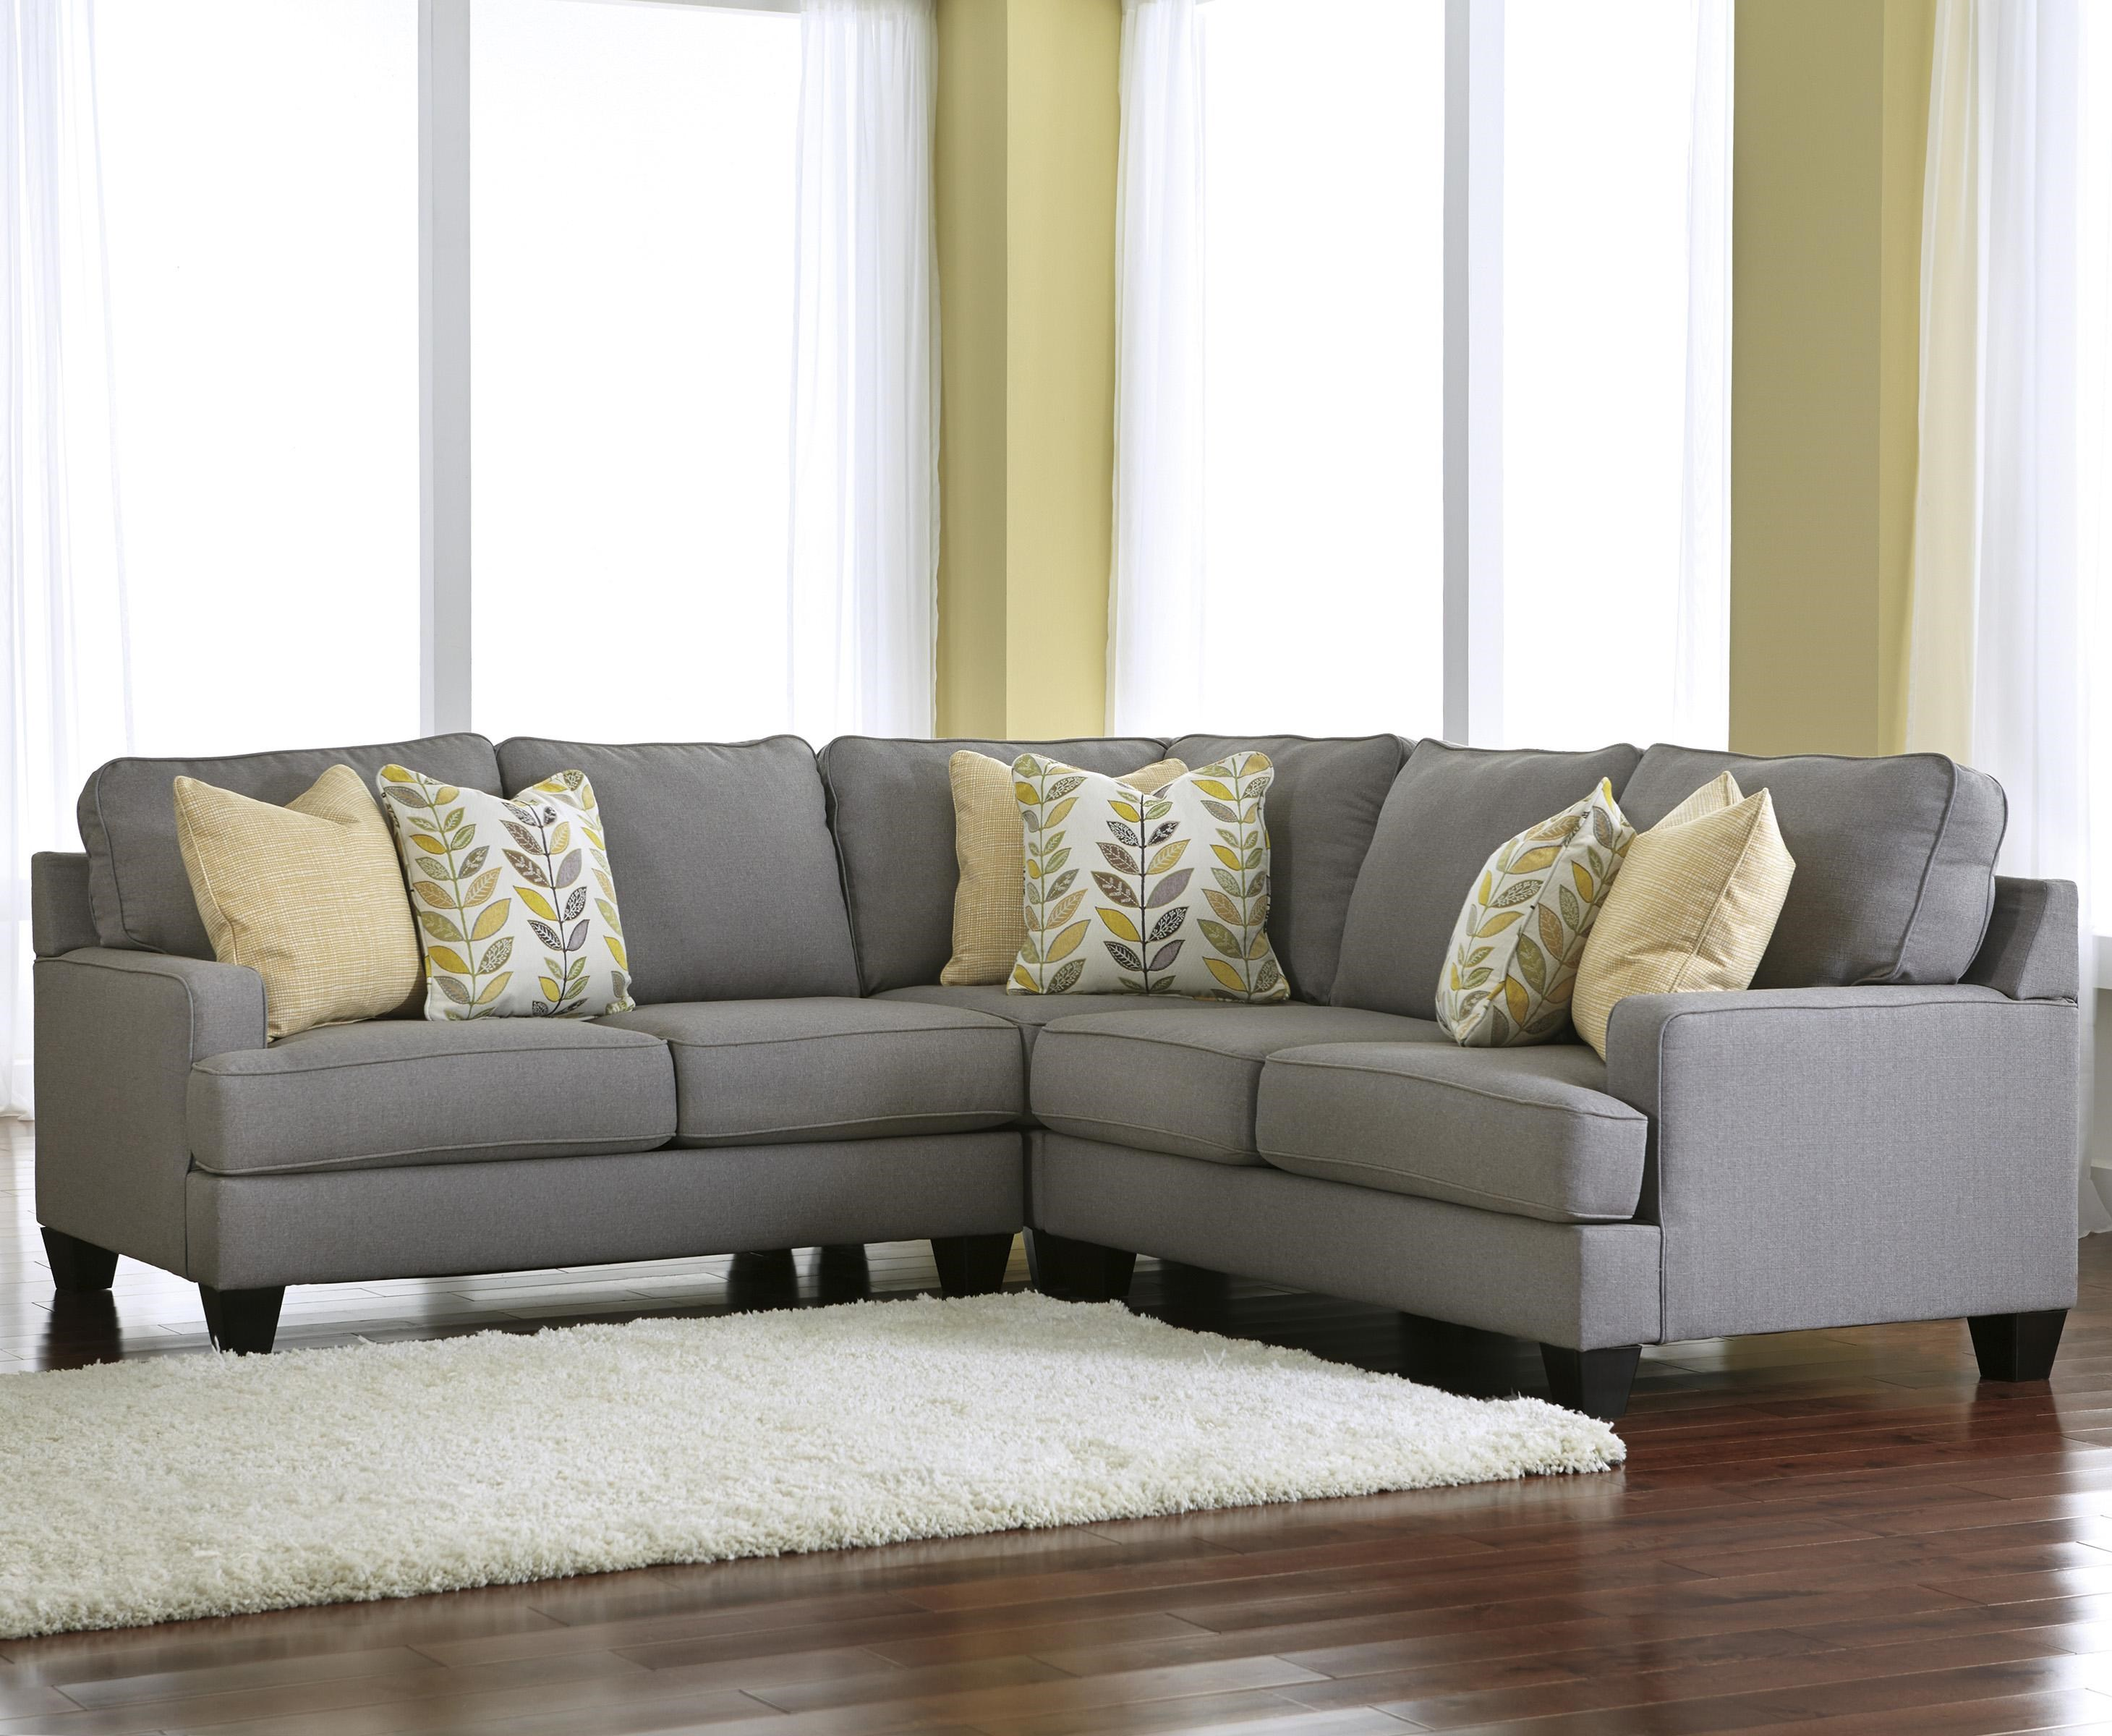 Signature Design by Ashley Chamberly - Alloy Modern 3-Piece Corner Sectional Sofa with ...